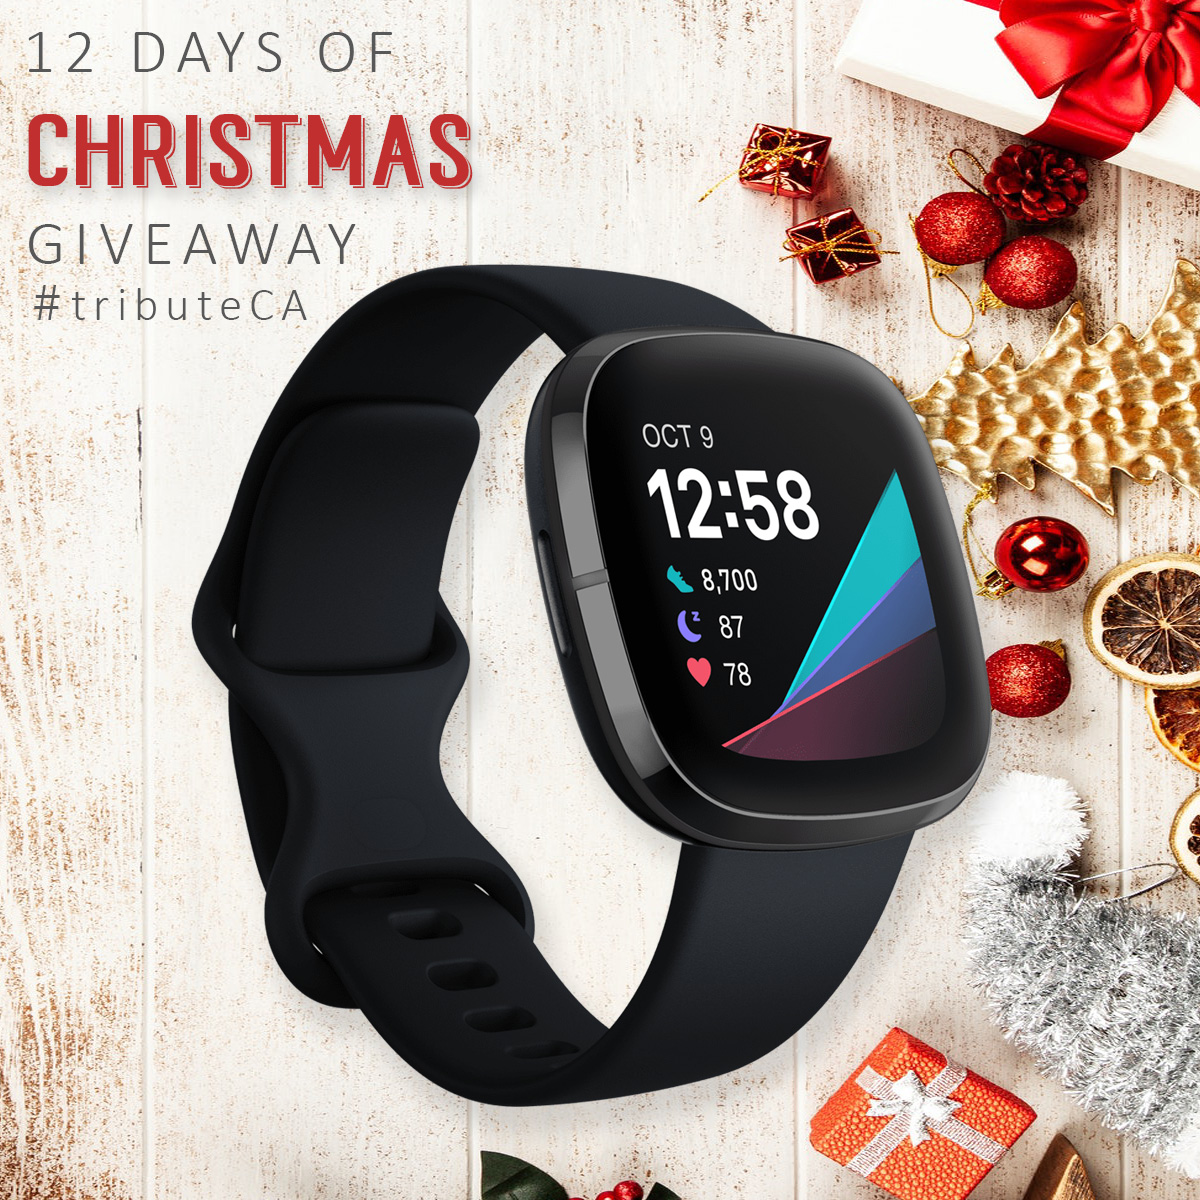 12 Days of Christmas giveaway: FitBit Sense